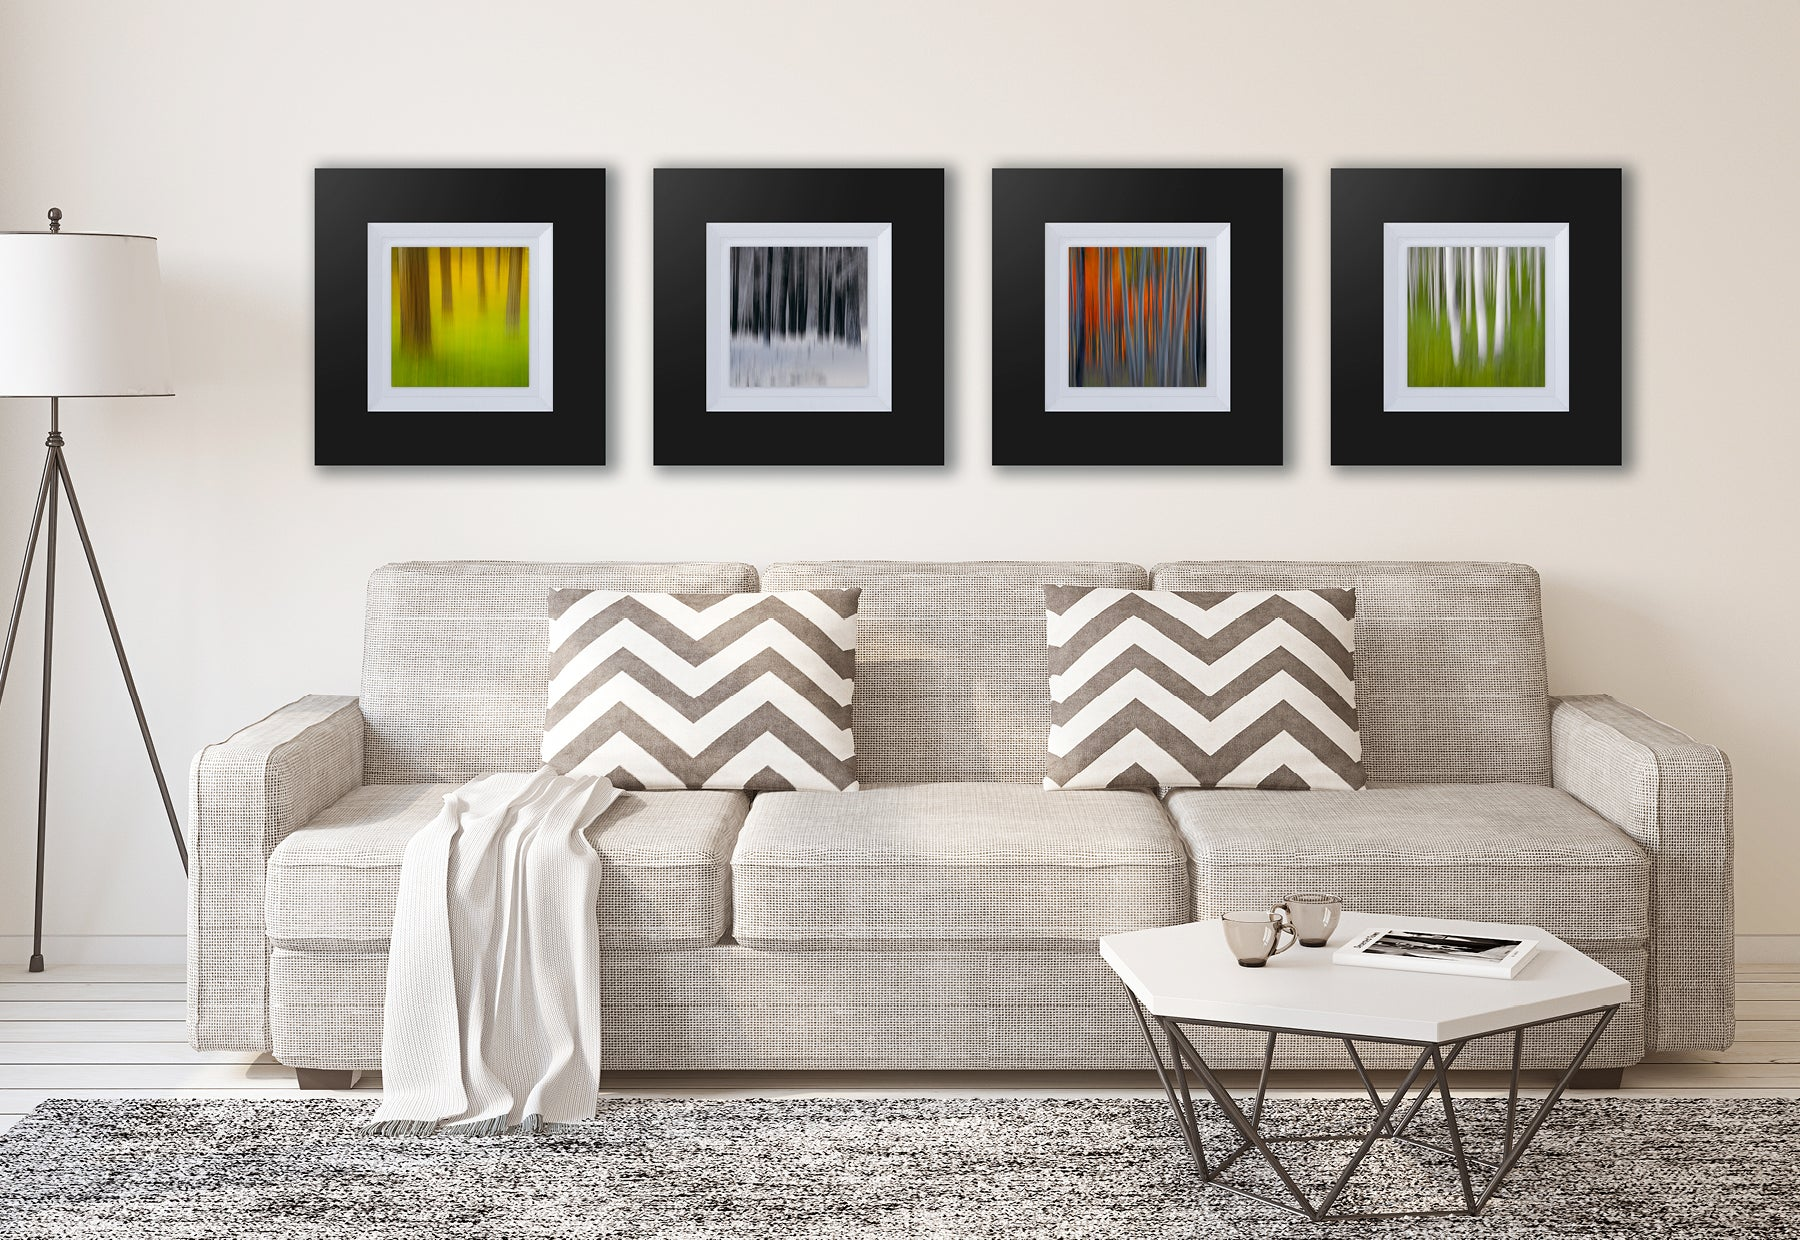 Living room with gray couch and white table featuring four framed square photographs of blurred Aspen trees by Peter Lik in dark brown frames with white linen liners